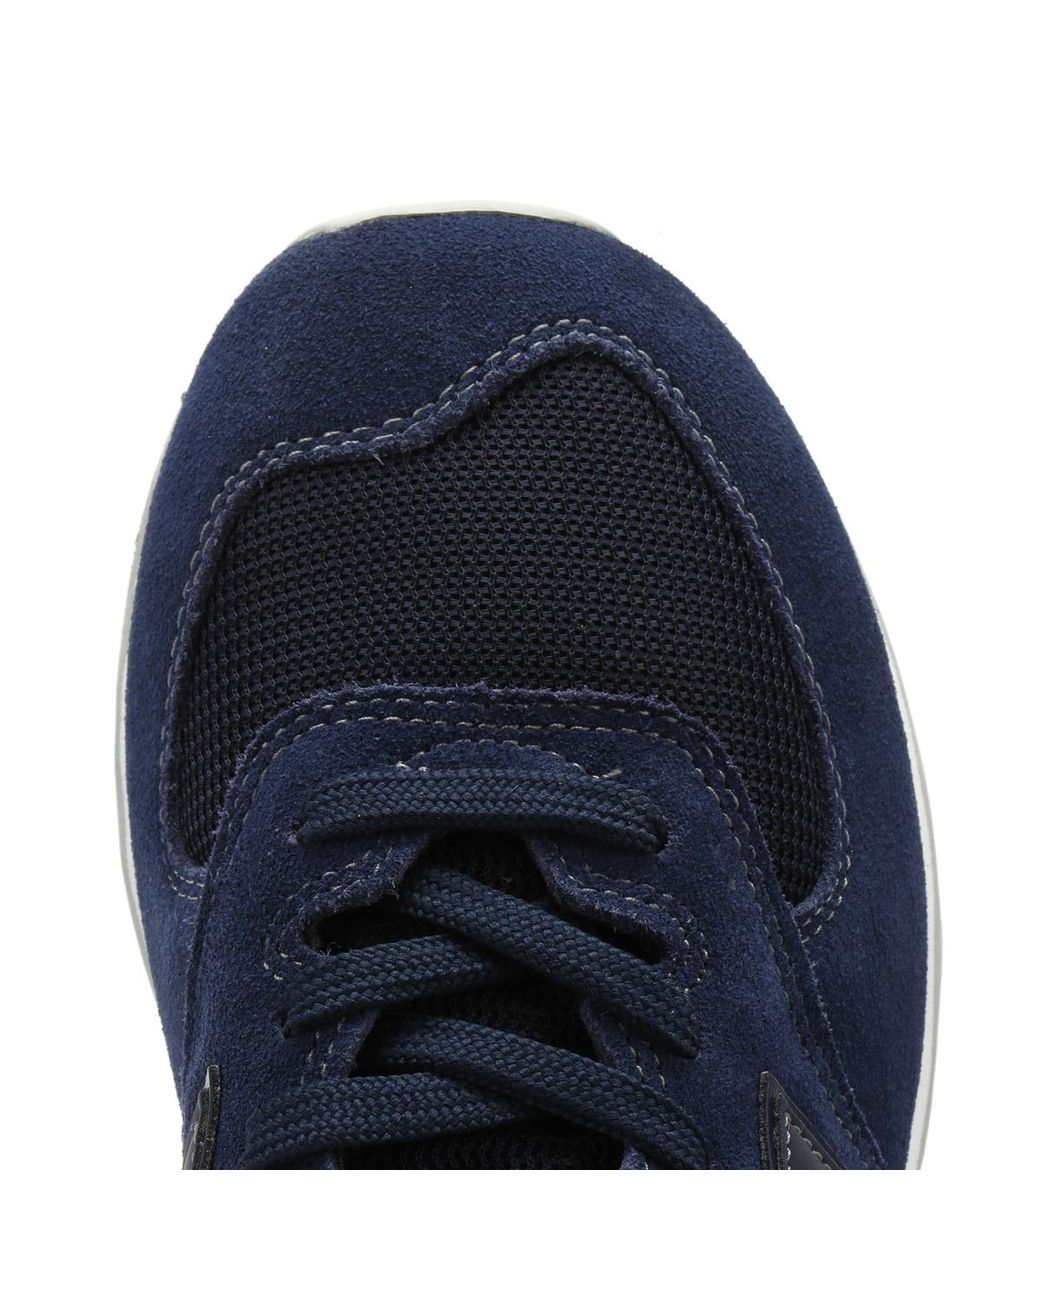 678e941efd77 Lyst - New Balance Mens Pigment Navy 574 Classic Trainers in Blue for Men